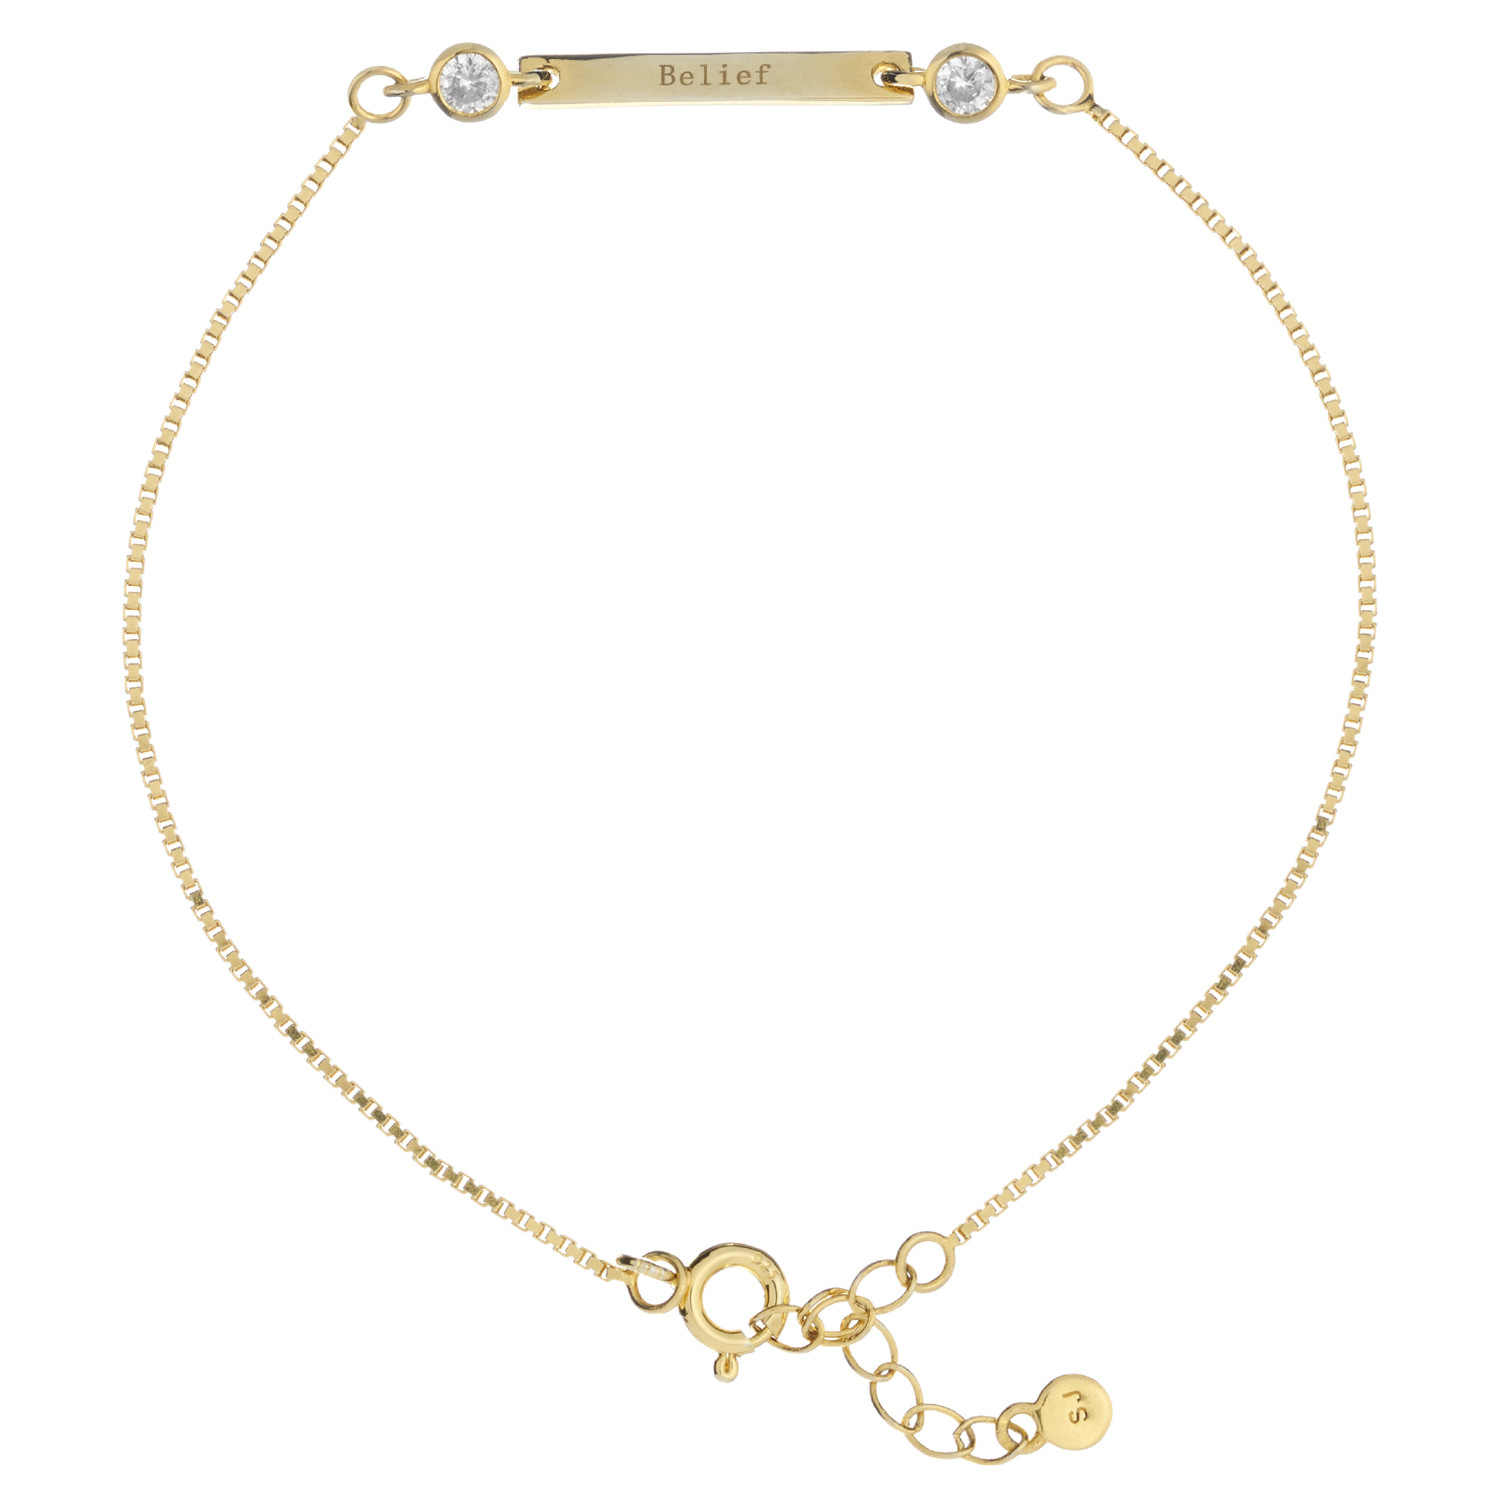 Synergy Sister friendship bracelet in gold-plated with message of belief